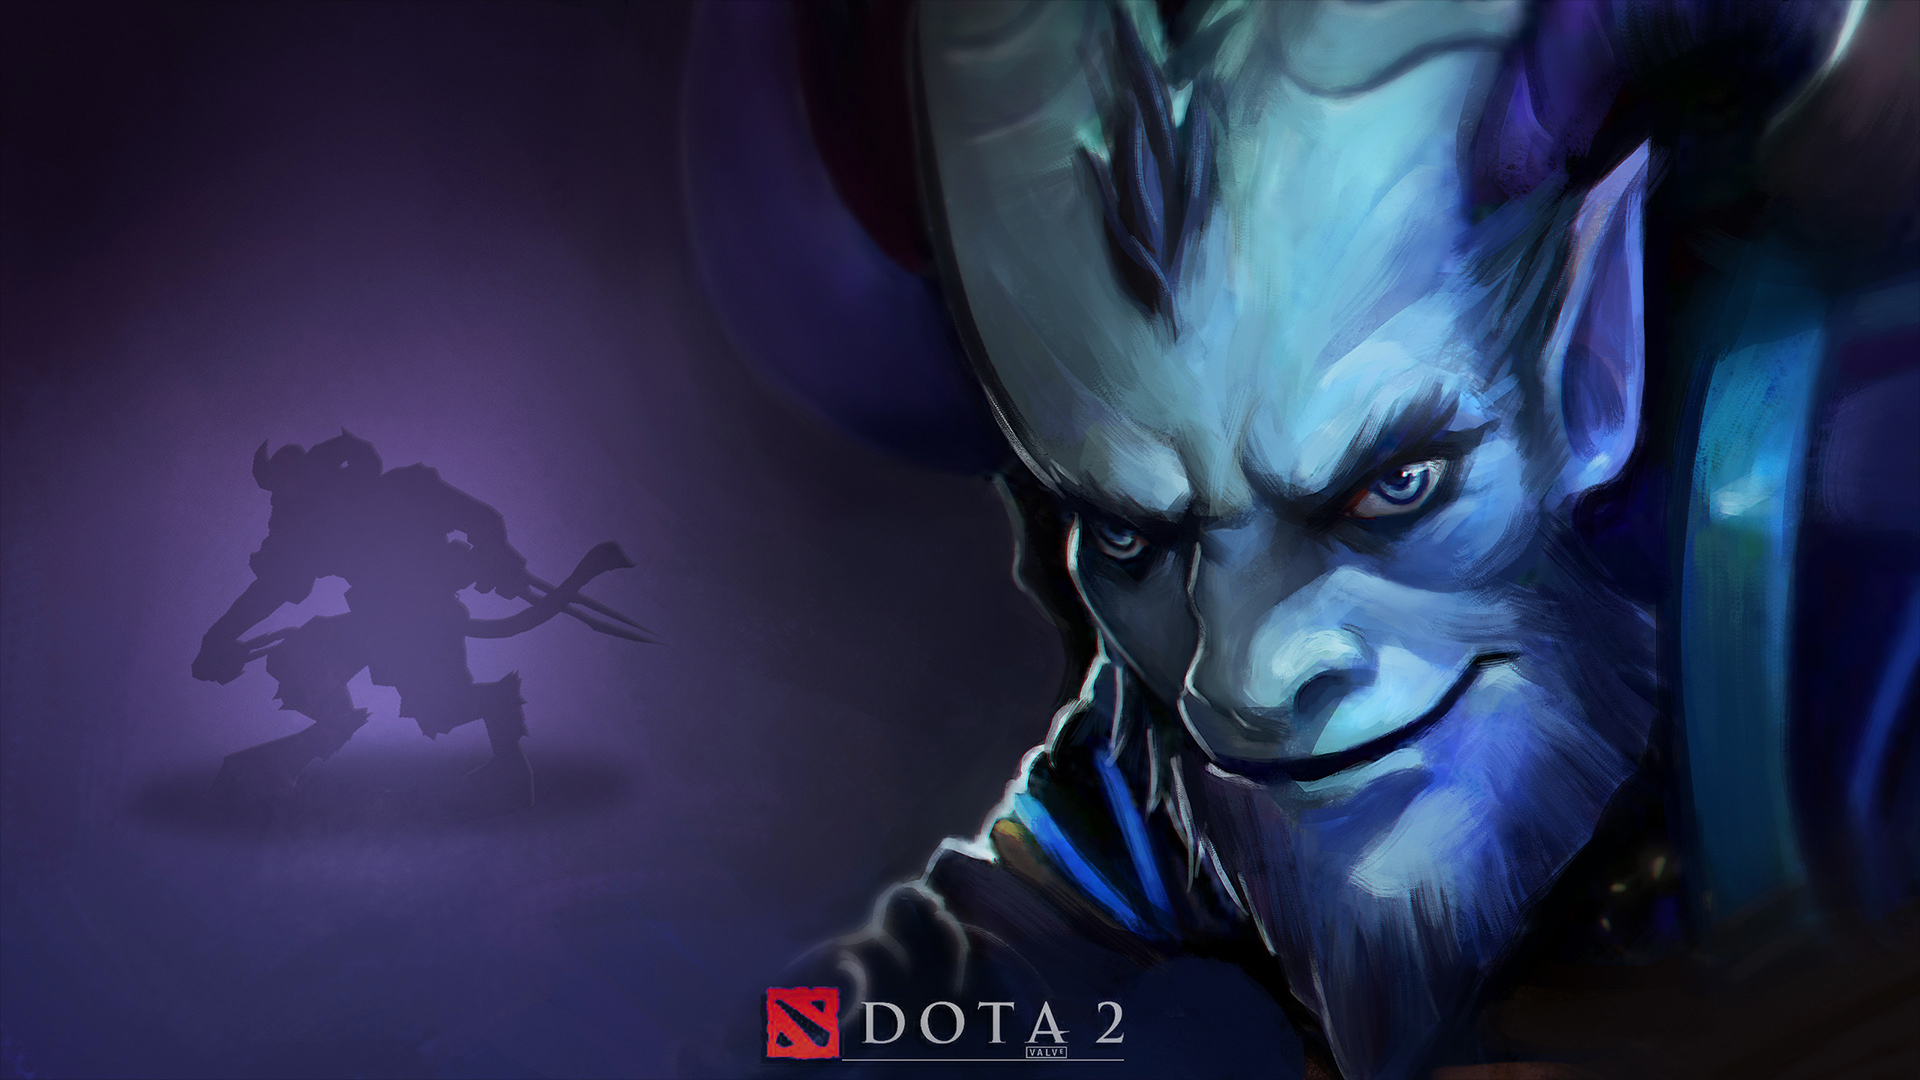 Riki Wallpapers Dota 2 Full HD Download Valve Wallpapers